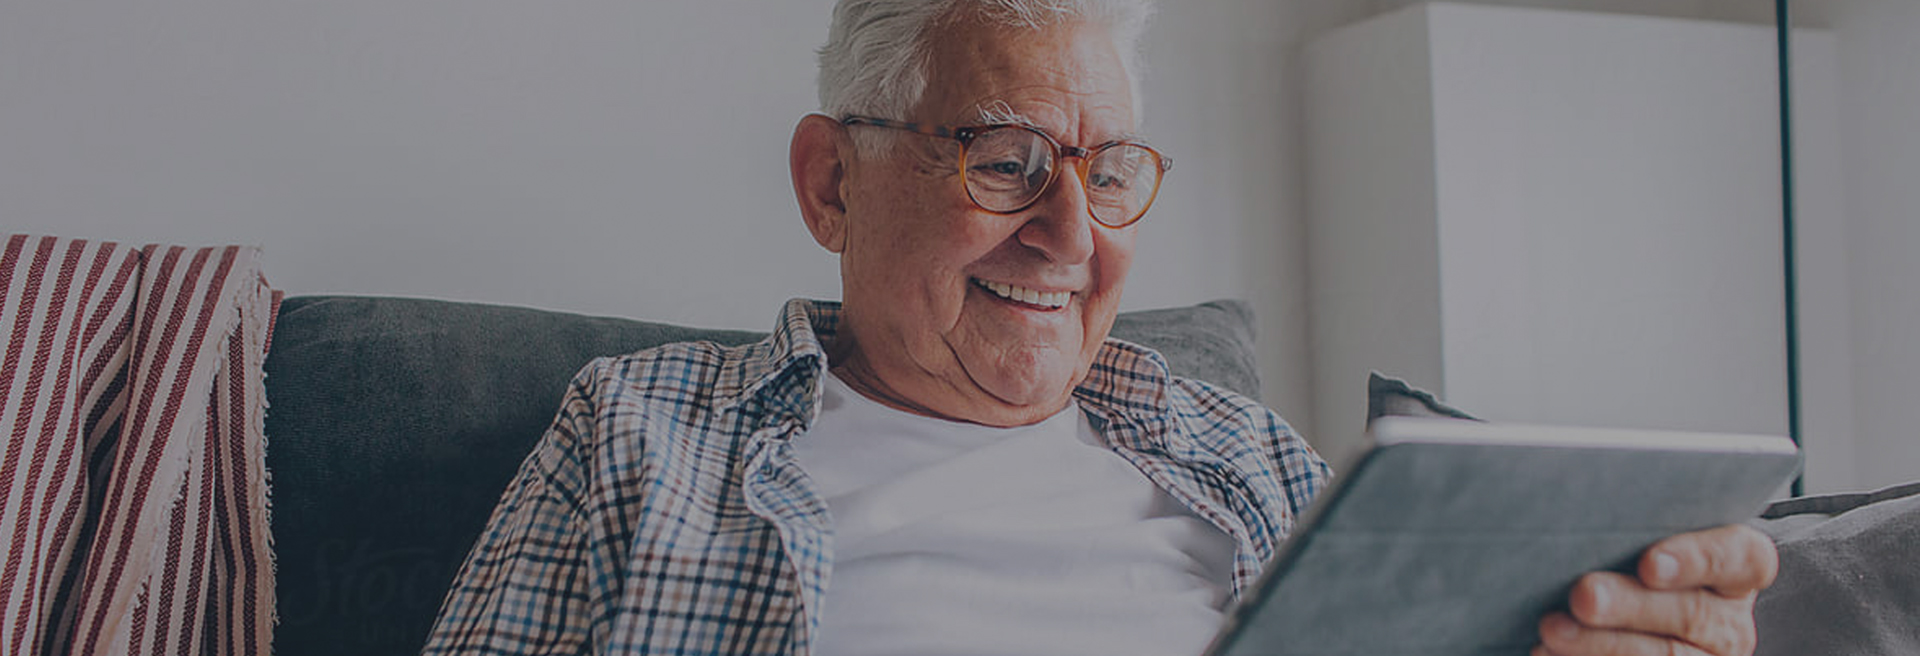 Elderly man sitting on couch looking at ipad